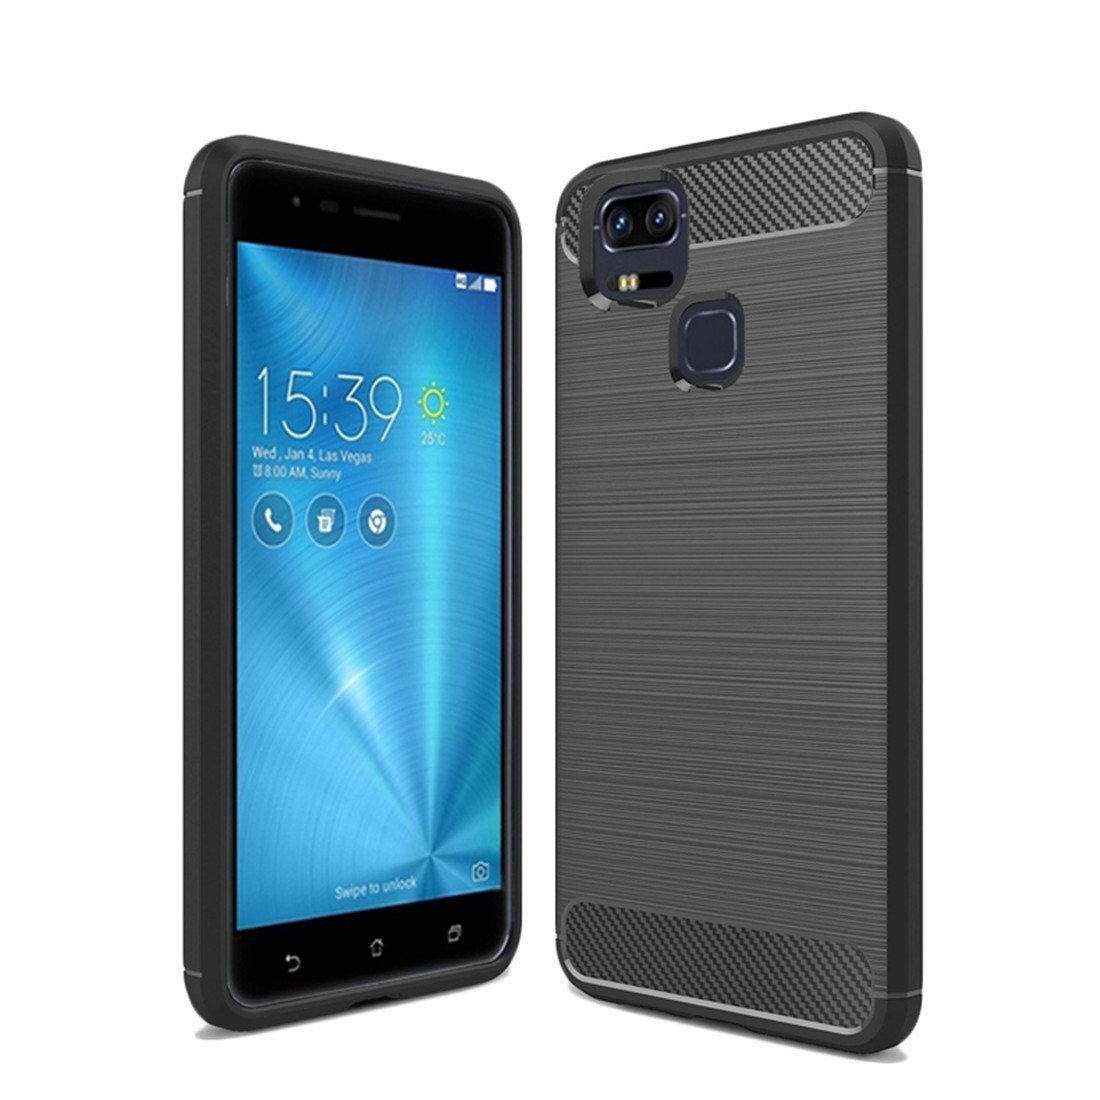 new concept b8ce2 5d5bb ASUS zenfone 3 ZOOM ZE553KL Case,Mustaner Shock-Absorption Carbon Fiber  Flexible TPU Rubber Soft Silicone Full-body Protective Cover for 5.5